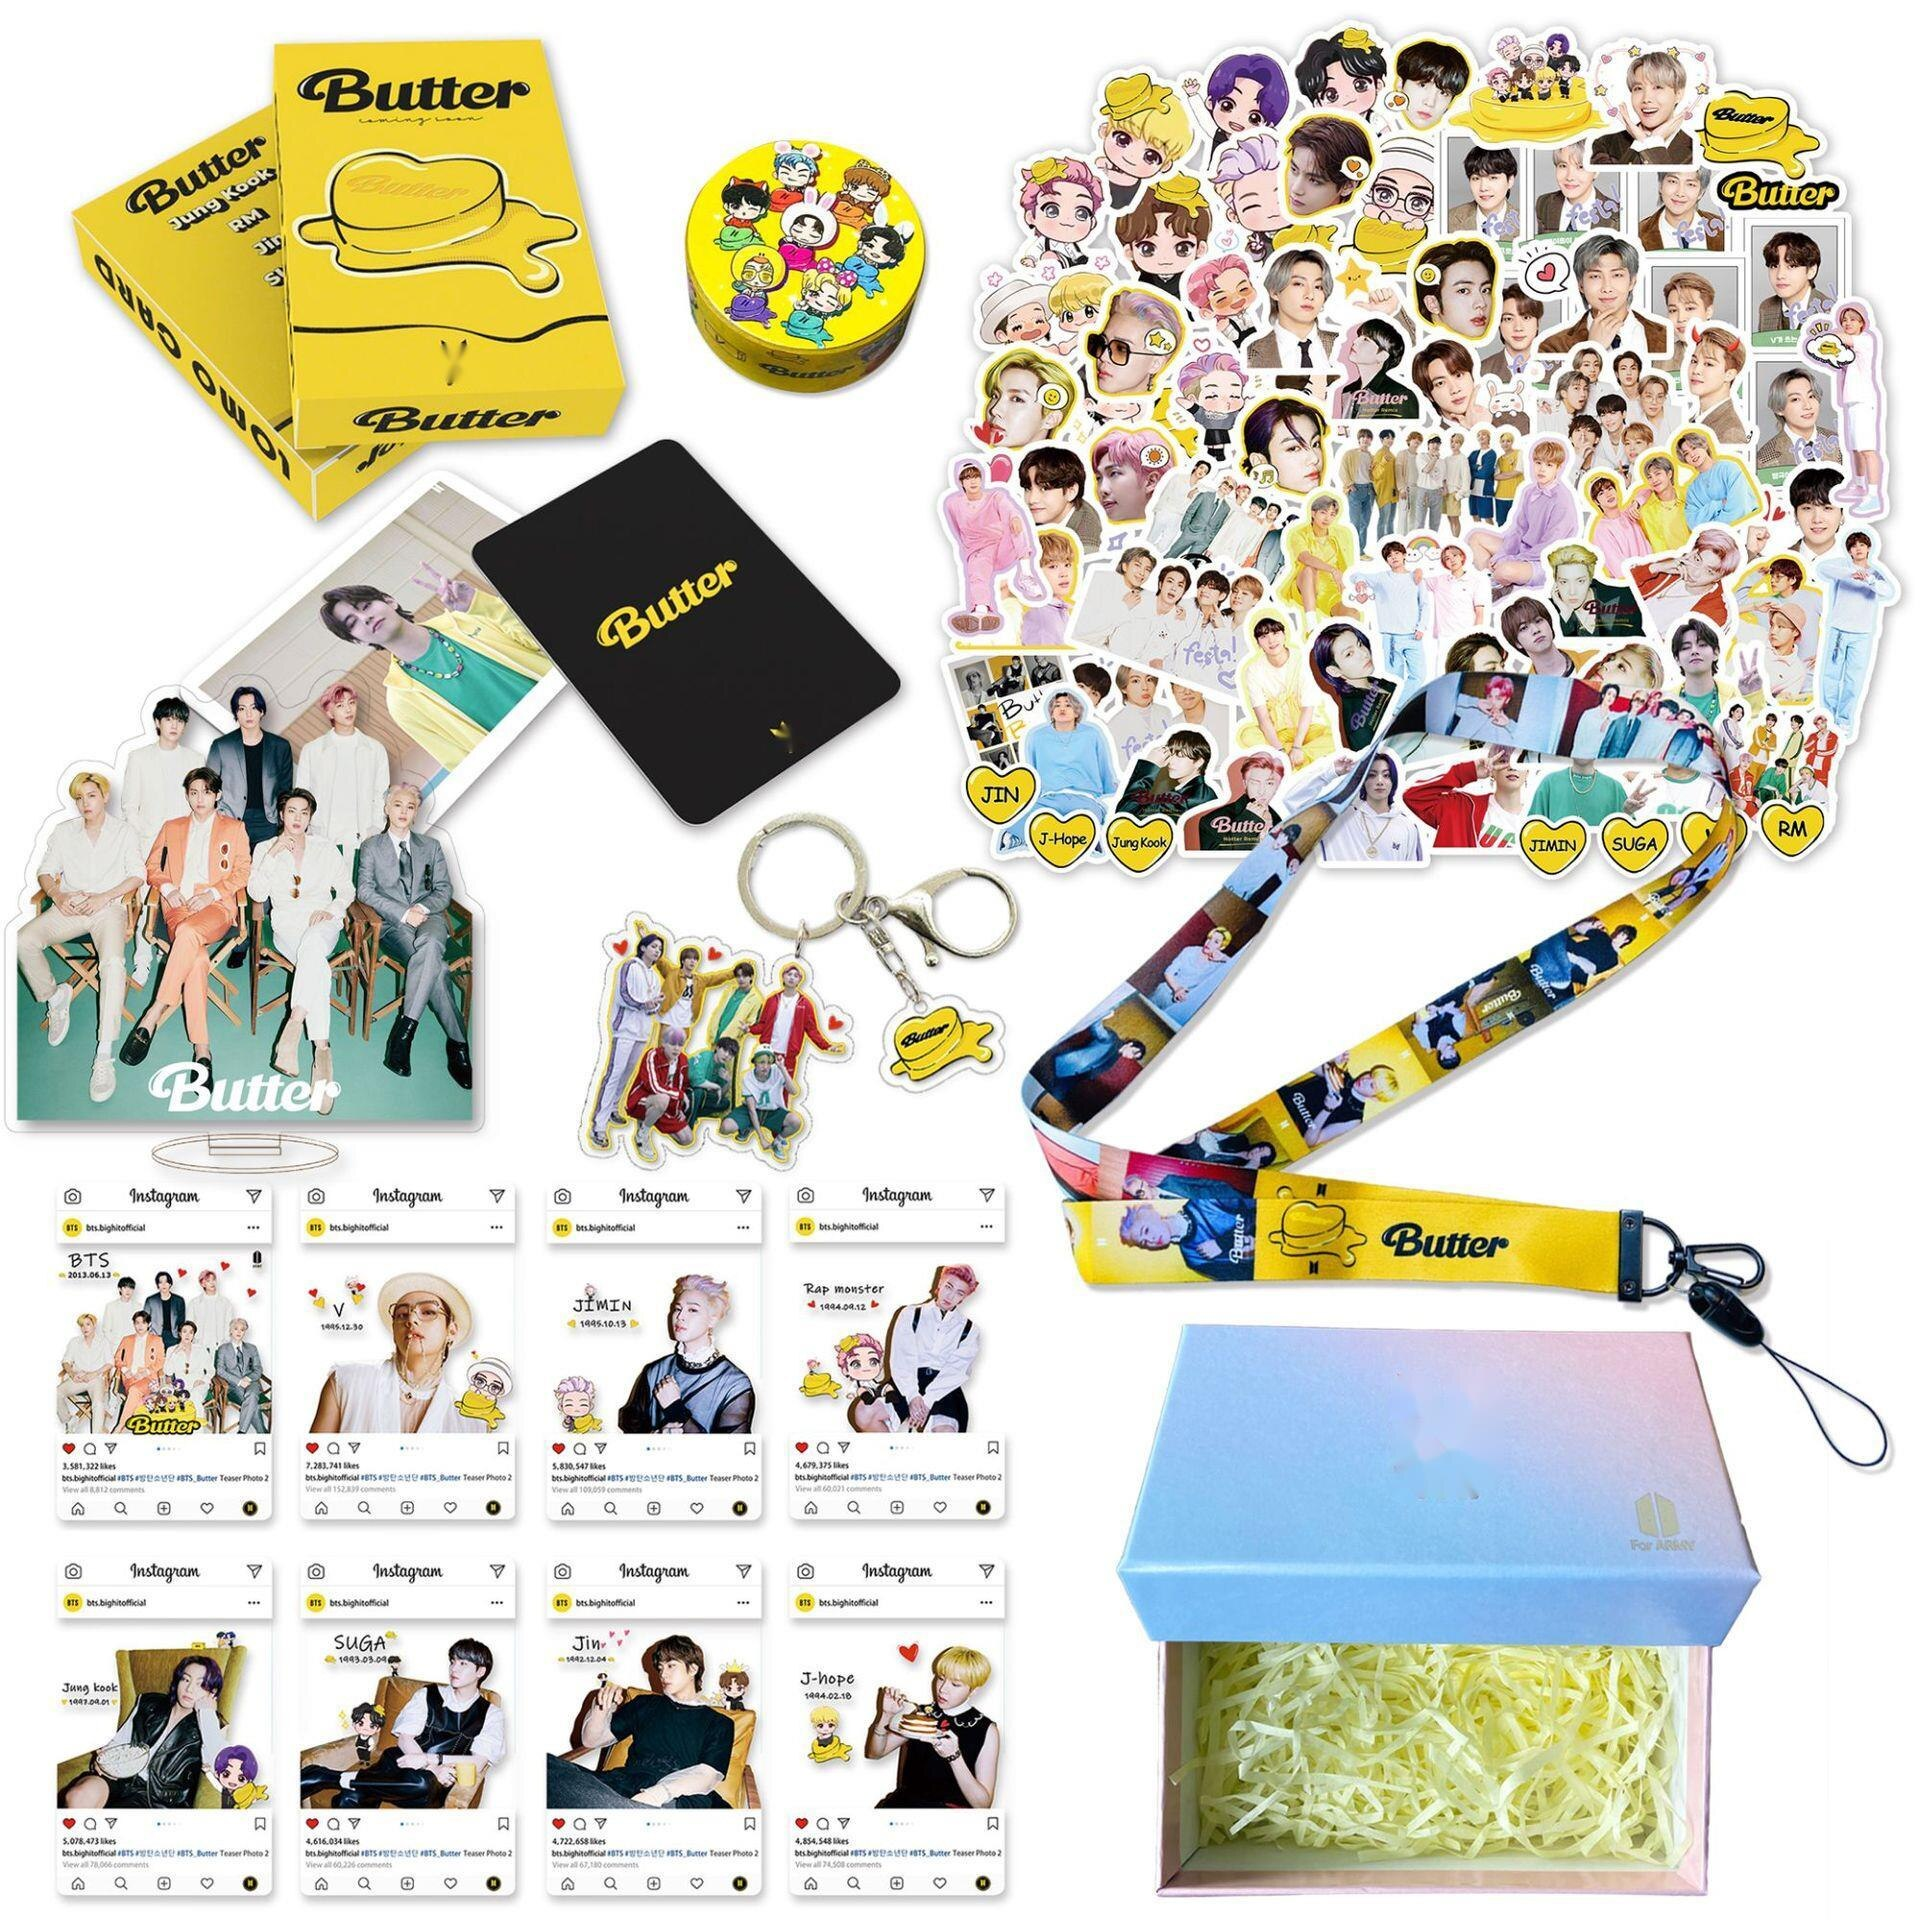 Kpop Bangtan Boys New Song Butter Peripheral Aid Gift Pack Postcard Hanging Rope Keychain Sticker Gift Box Set Lomo Card Suga